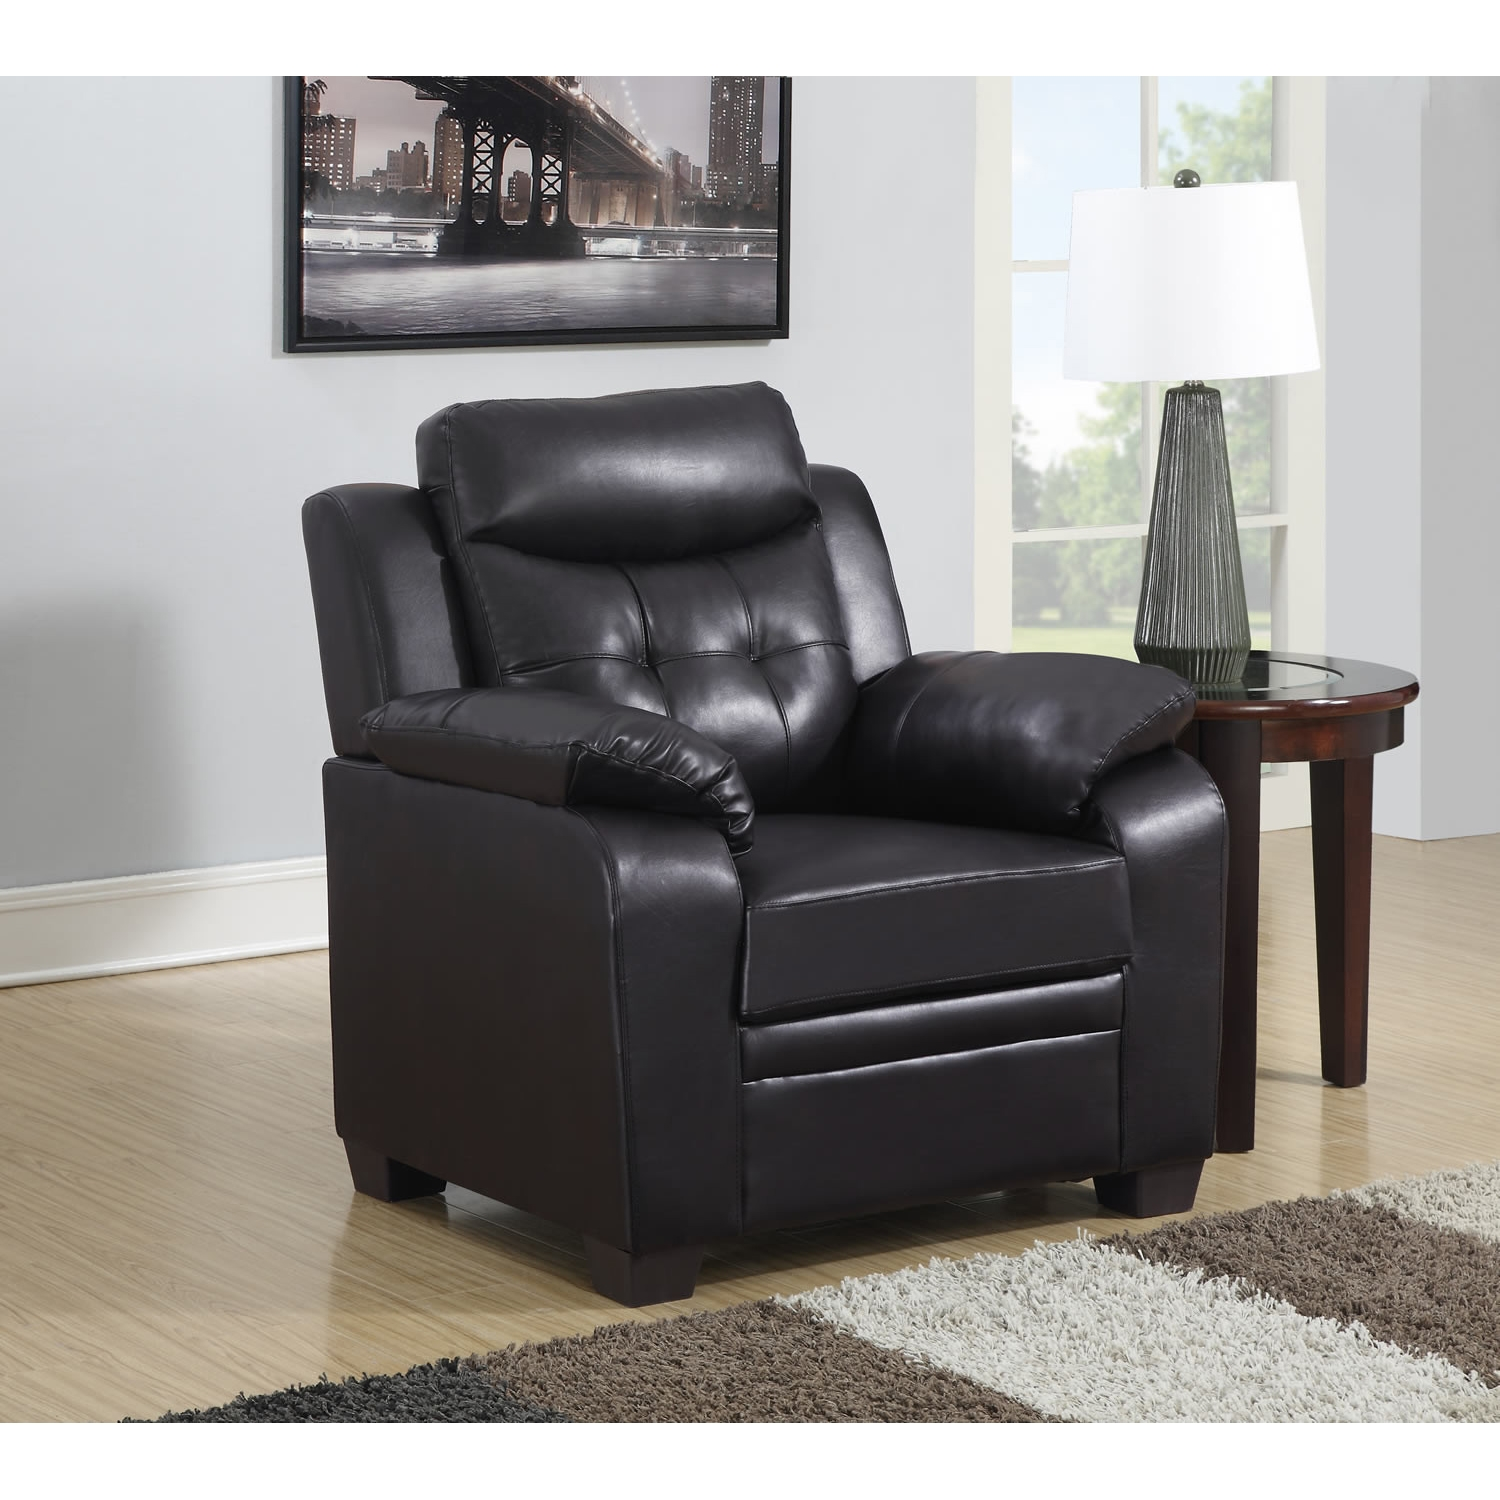 Daniela Bonded Leather Chair in Chocolate - GLO-U880016KD-CH-M